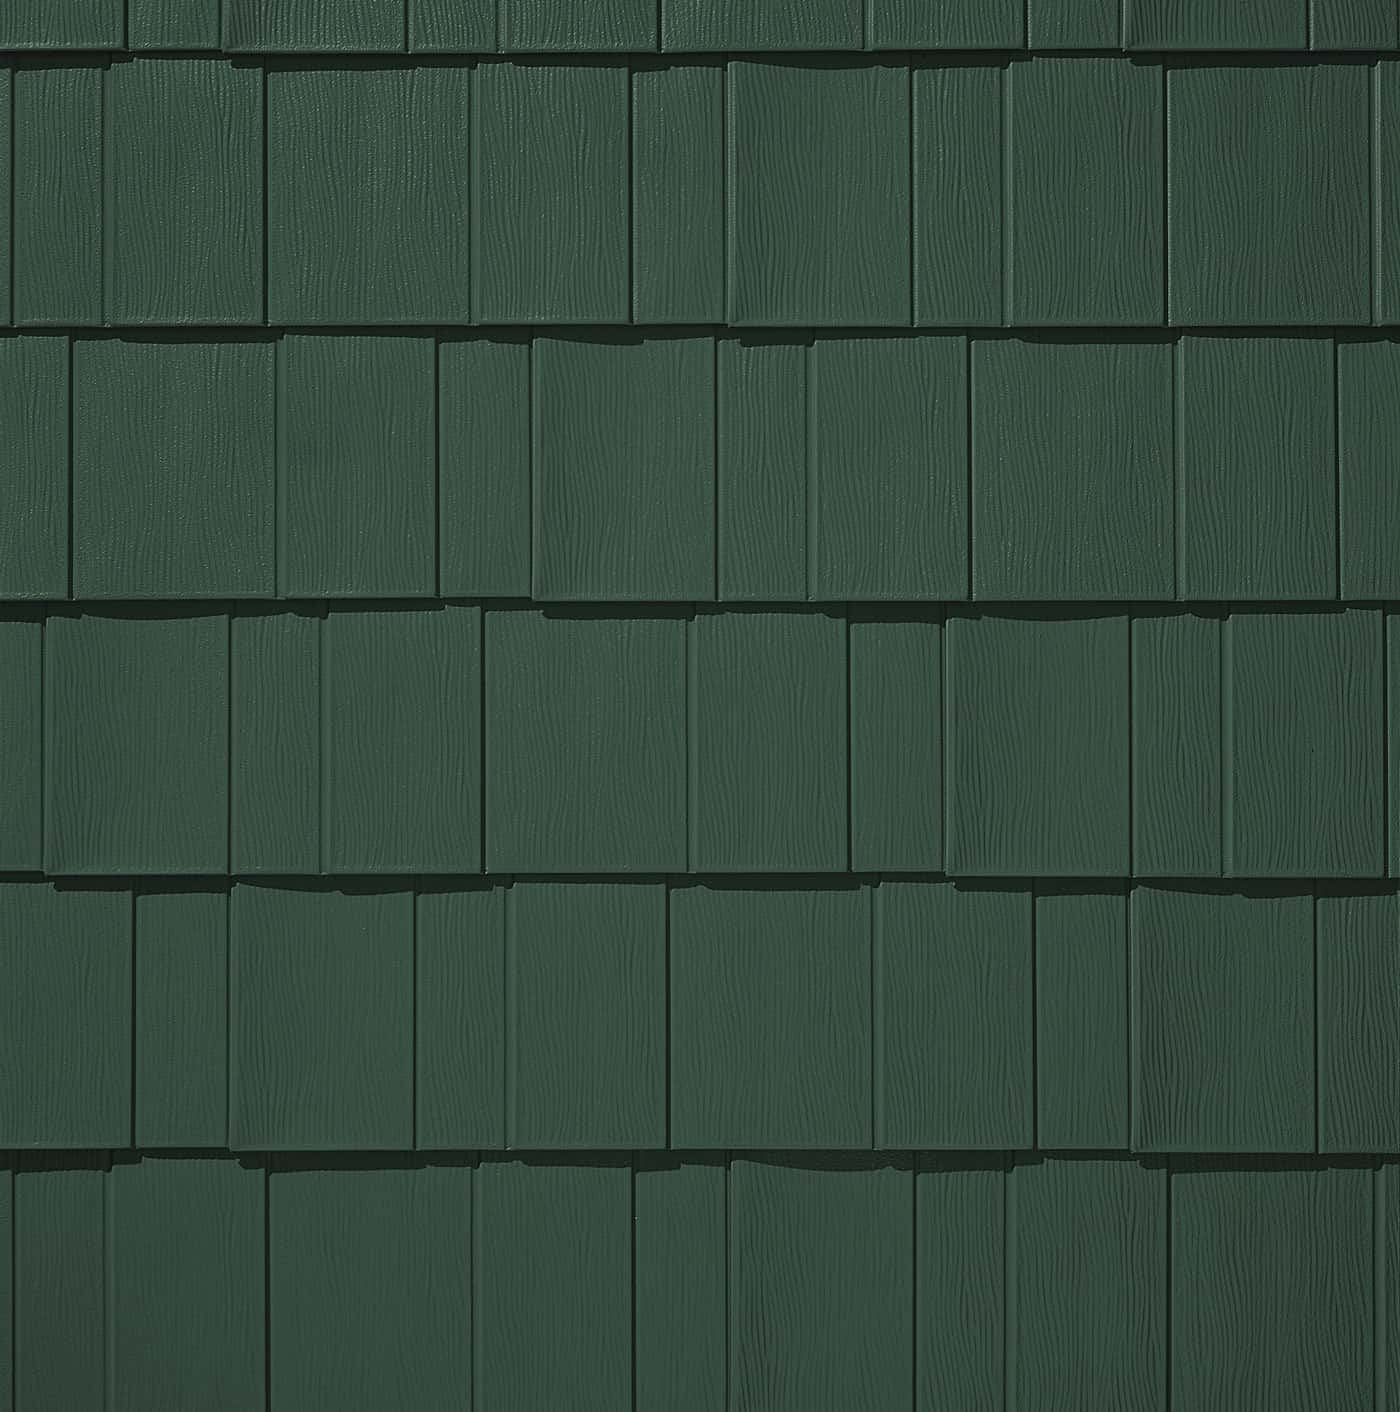 TAMKO Metalworks Astonwood Forest Green Swatch